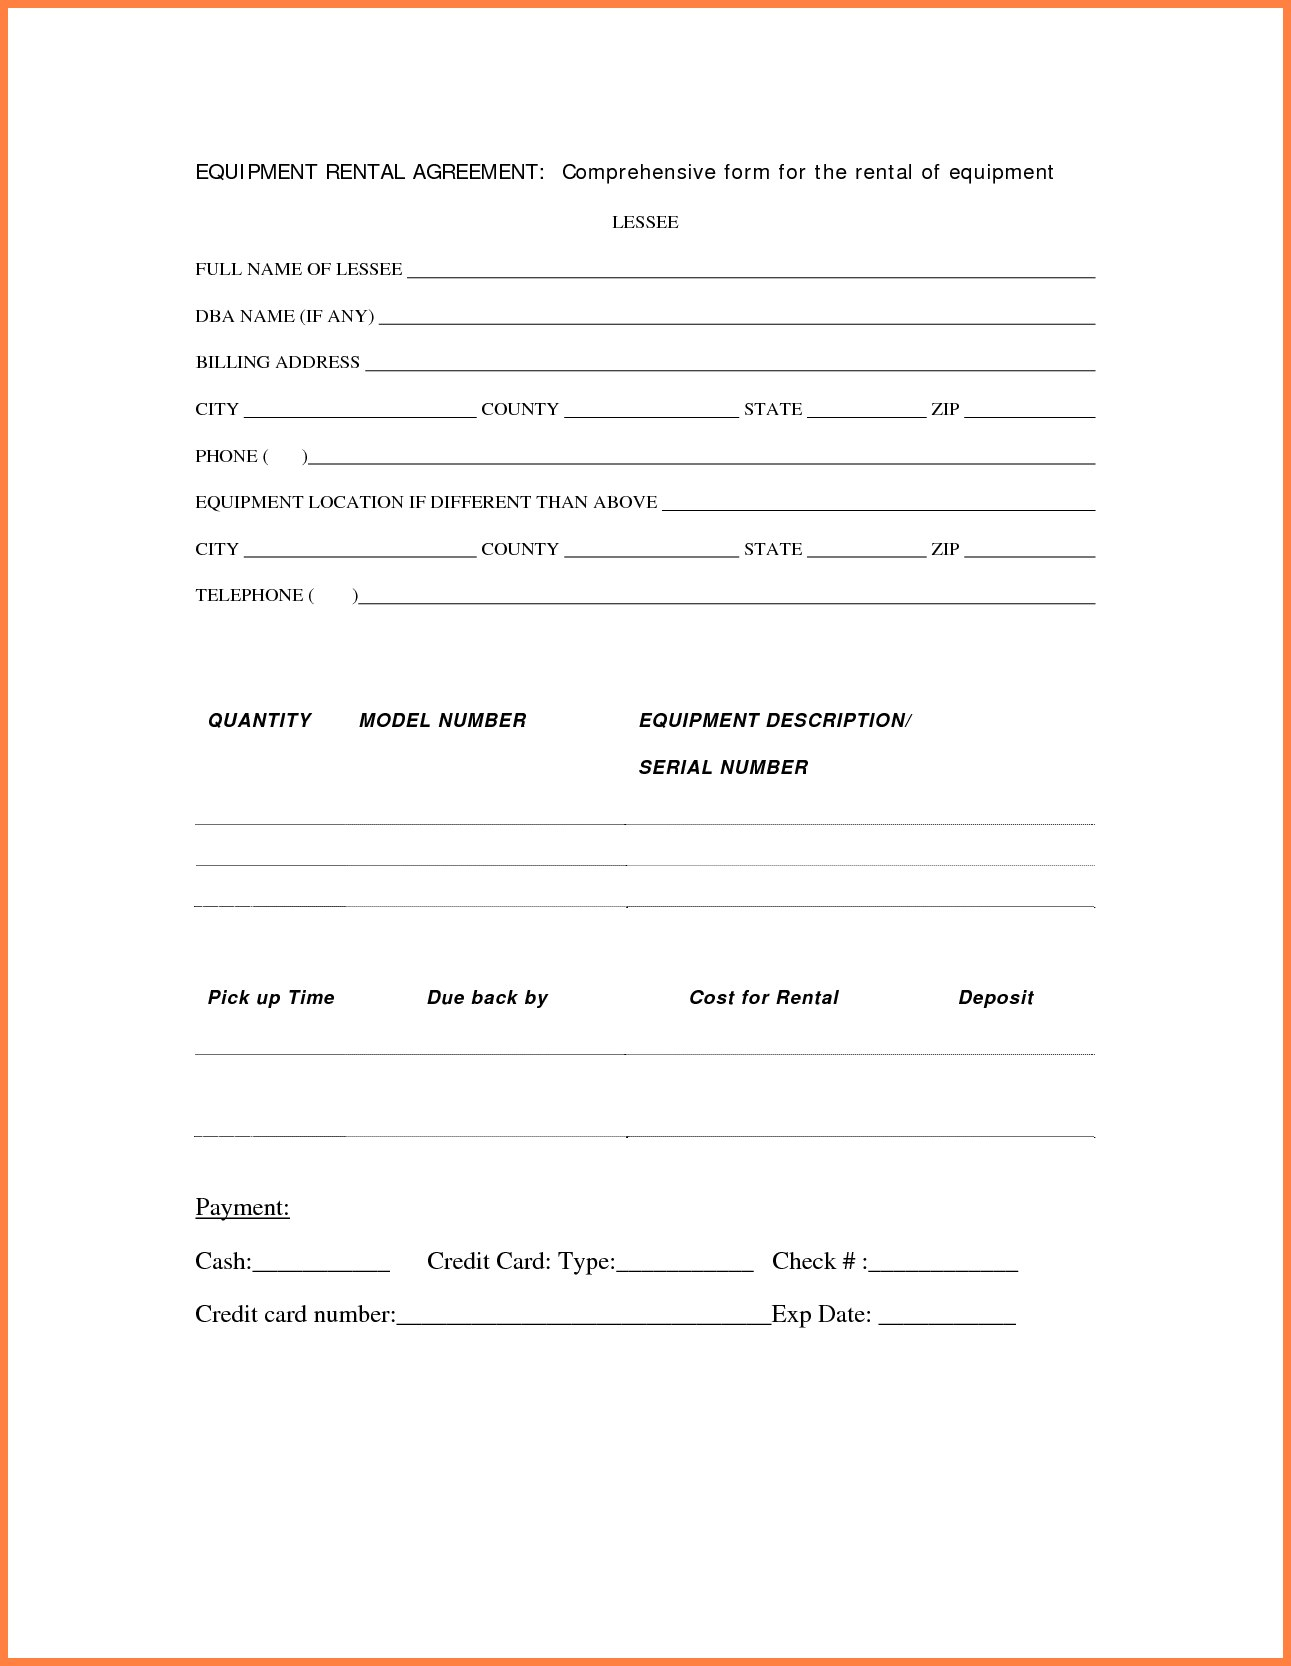 Equipment Rental Agreement Form Template Then Simple Contract Inside Music Equipment Rental Agreement Template